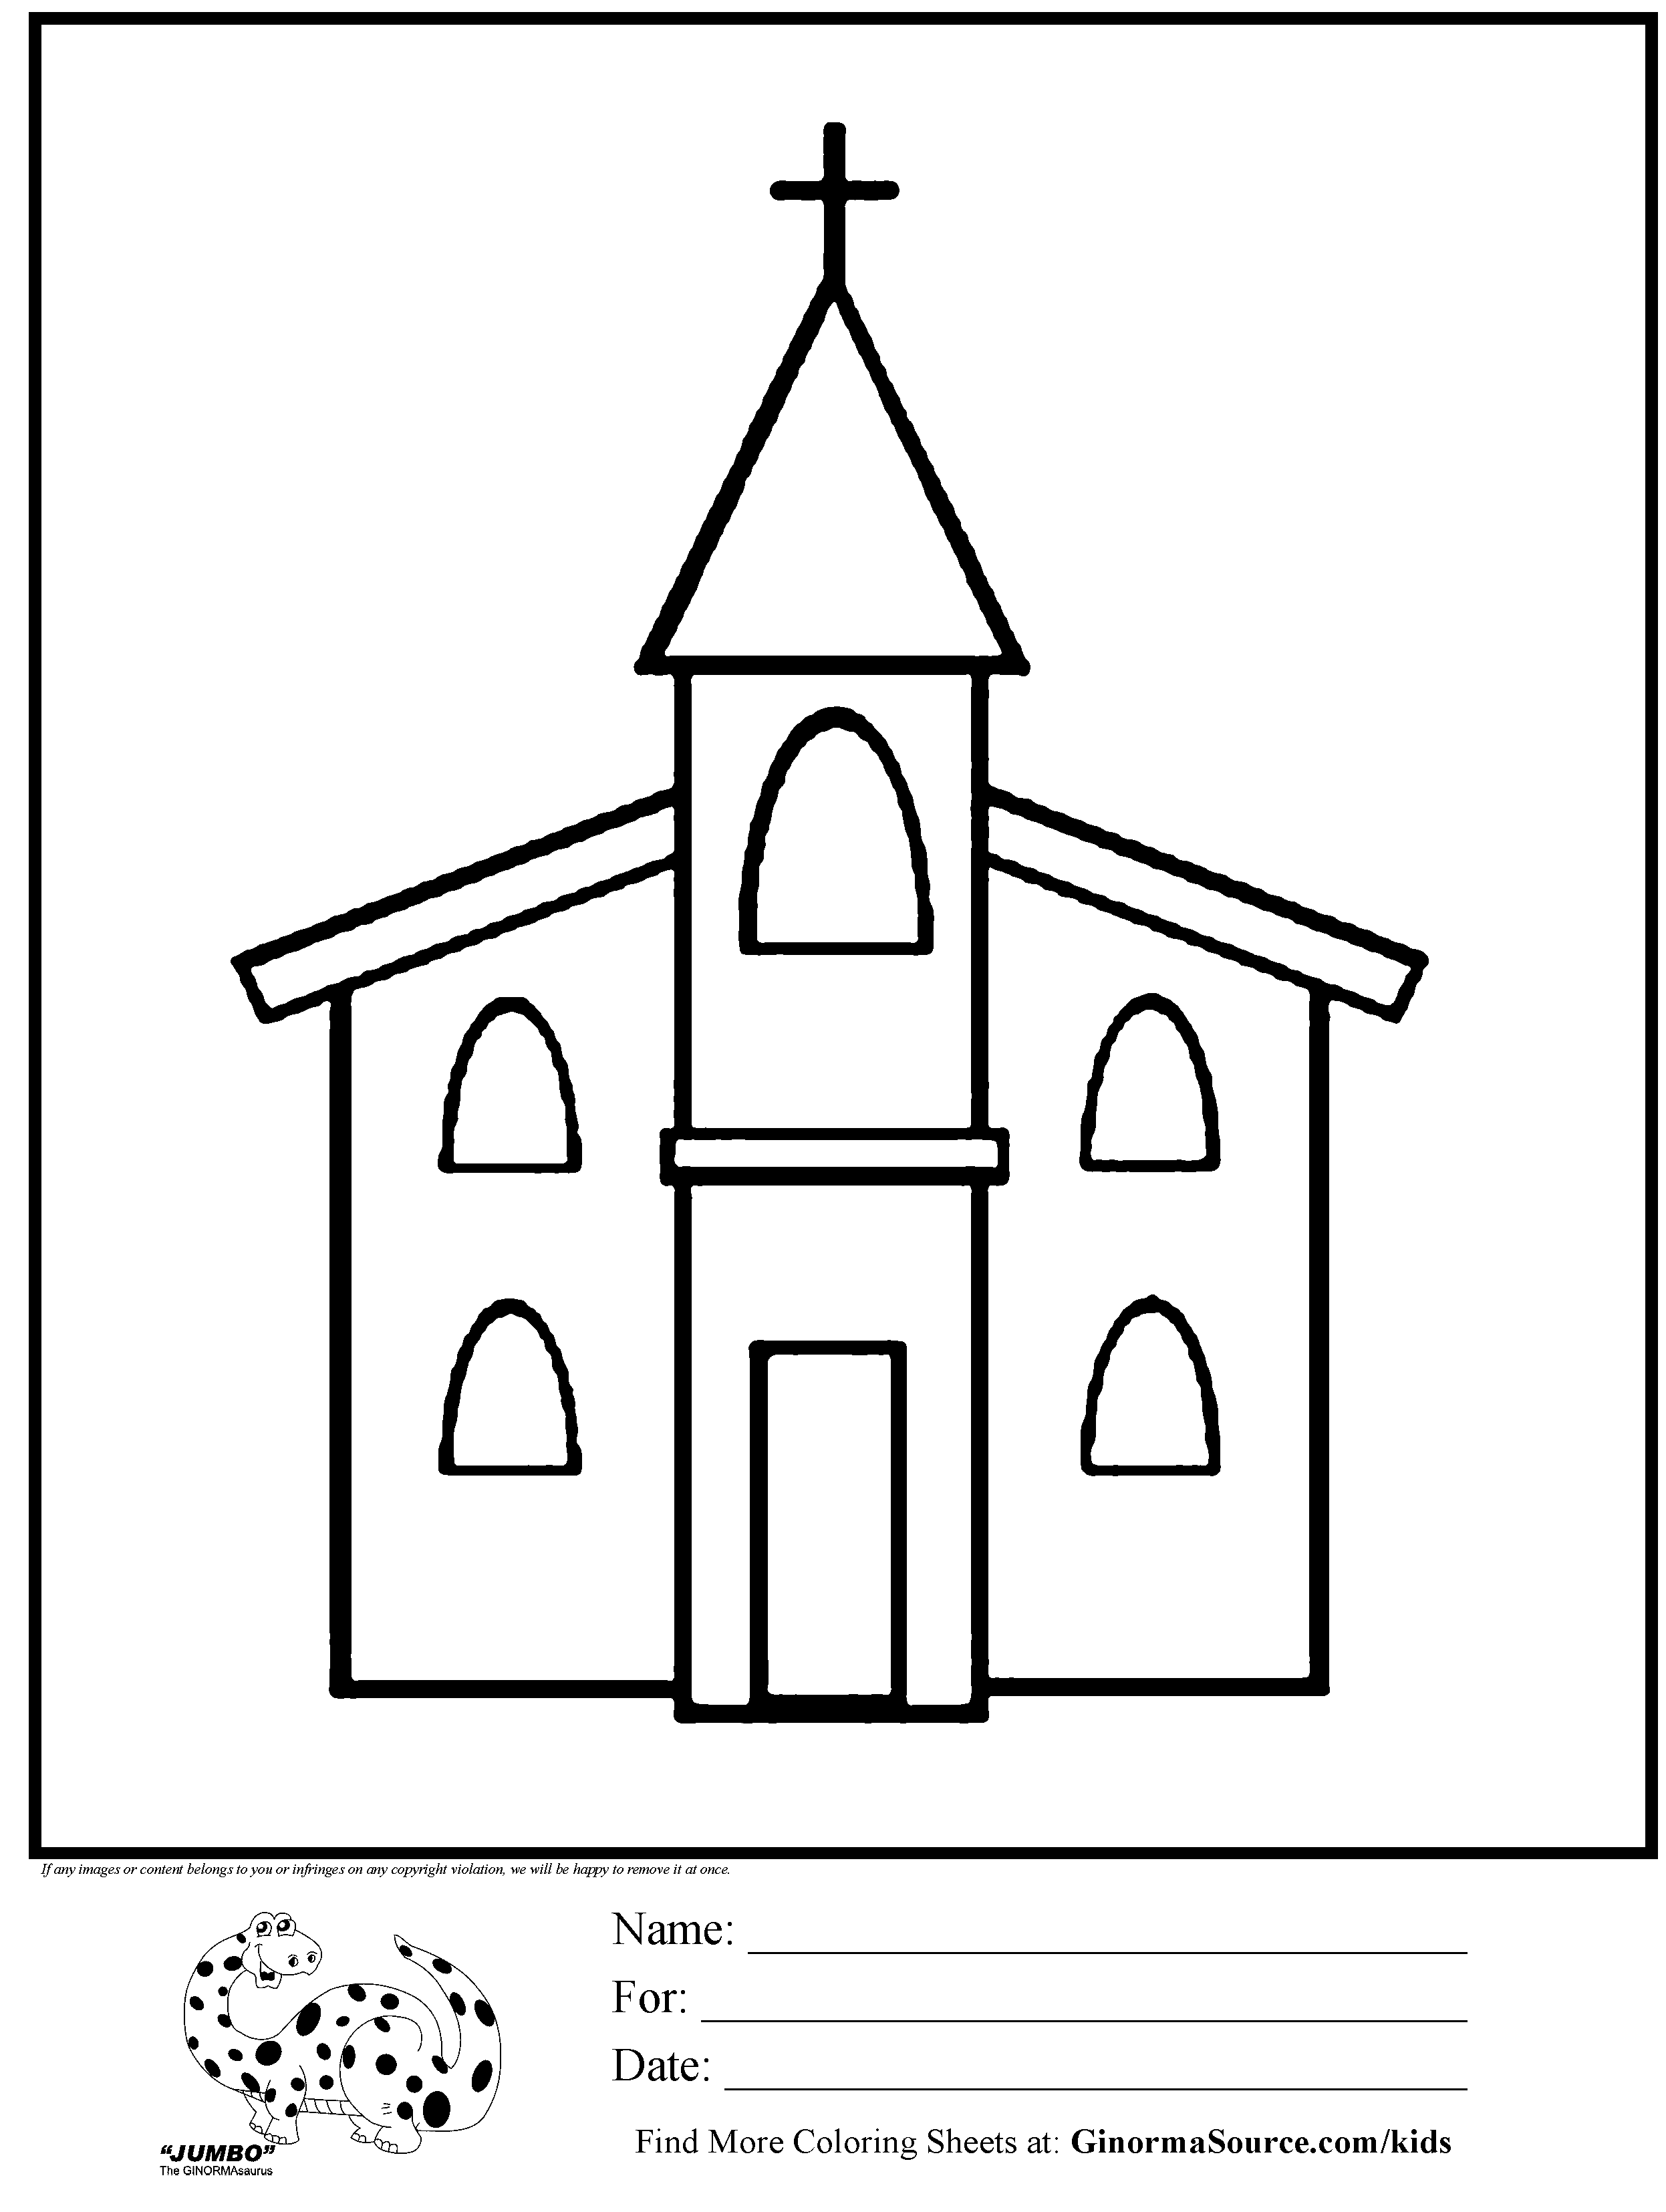 church coloring page church coloring pages coloring pages to download and print church coloring page